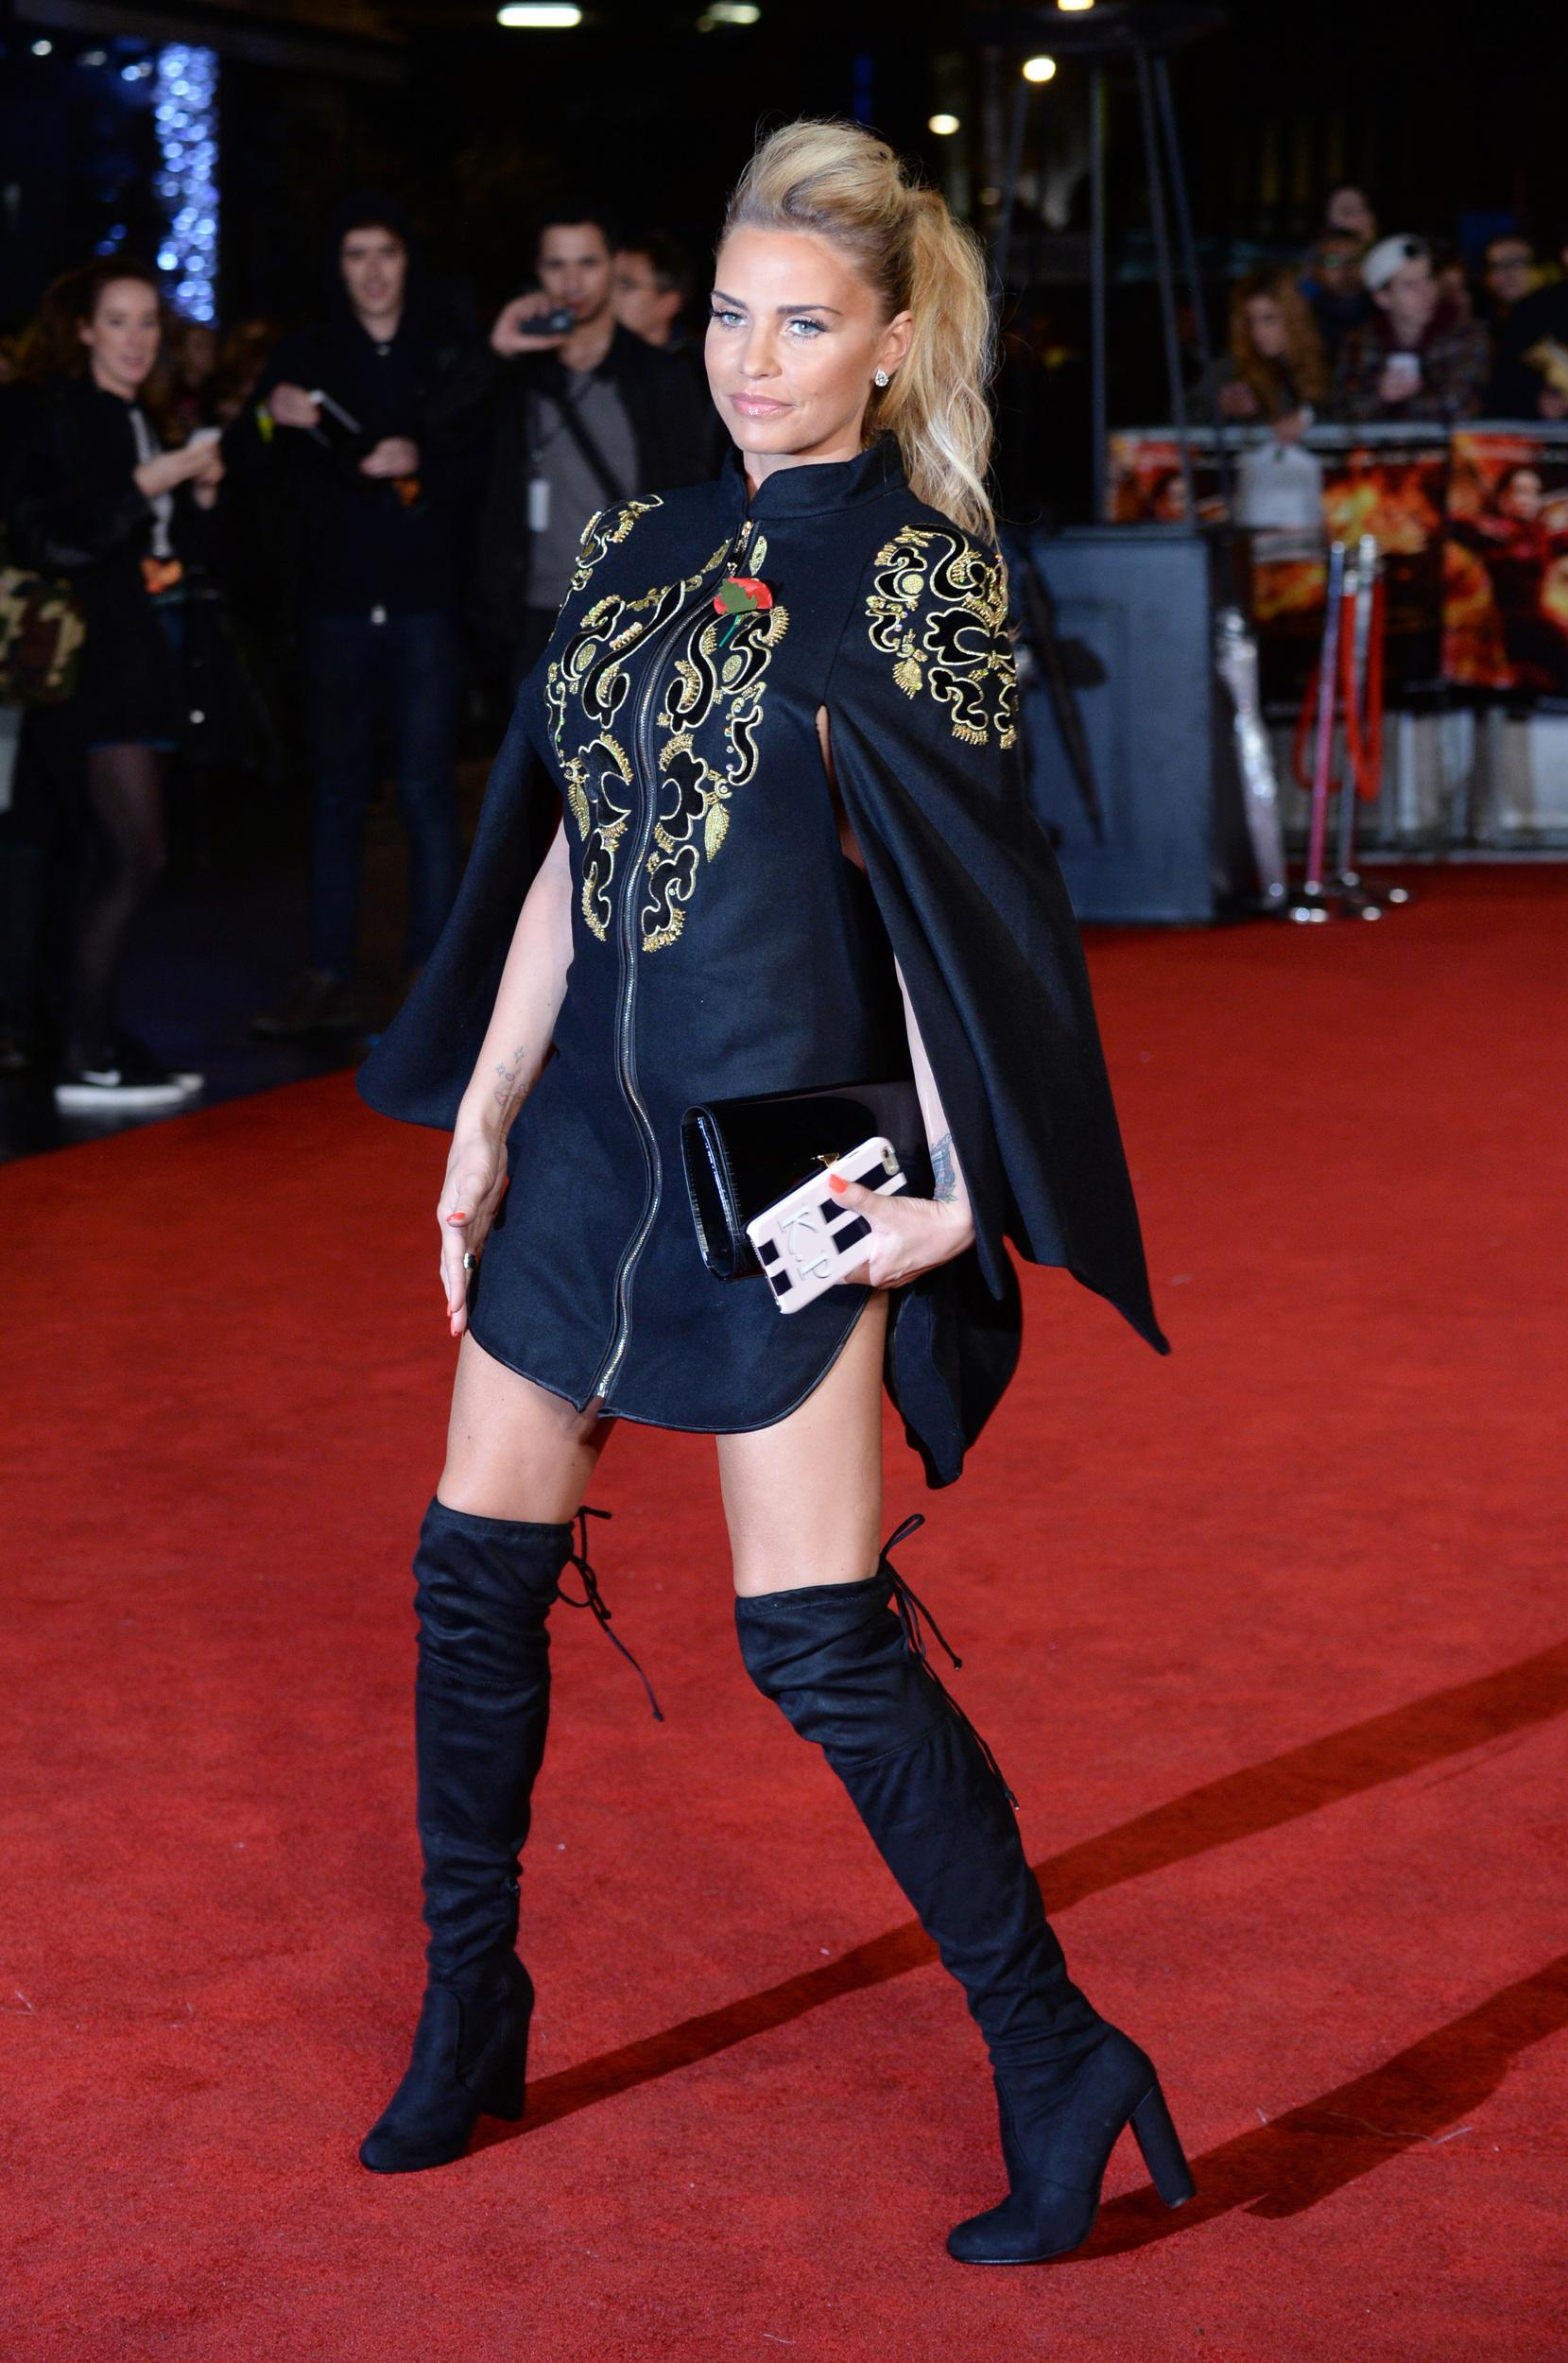 Katie Price attending the UK premiere of The UK Premiere of The Hunger Games: Mockingly Part 2 at the Odeon Leicester Square in London.